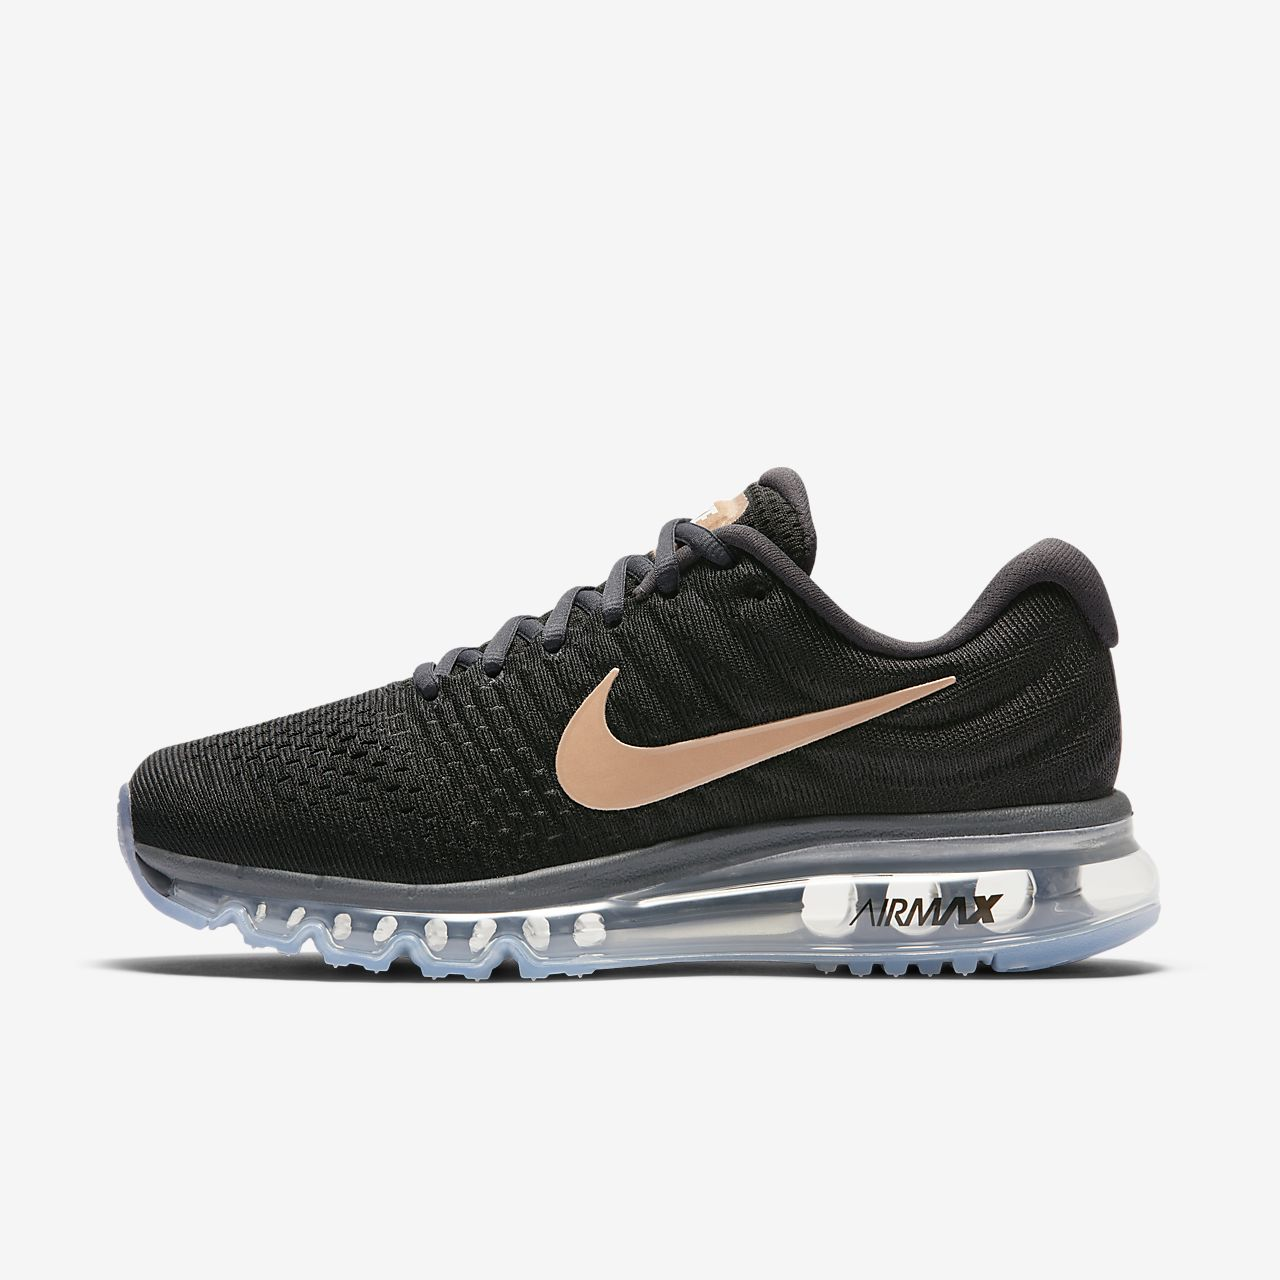 nike air max dames zwart wit